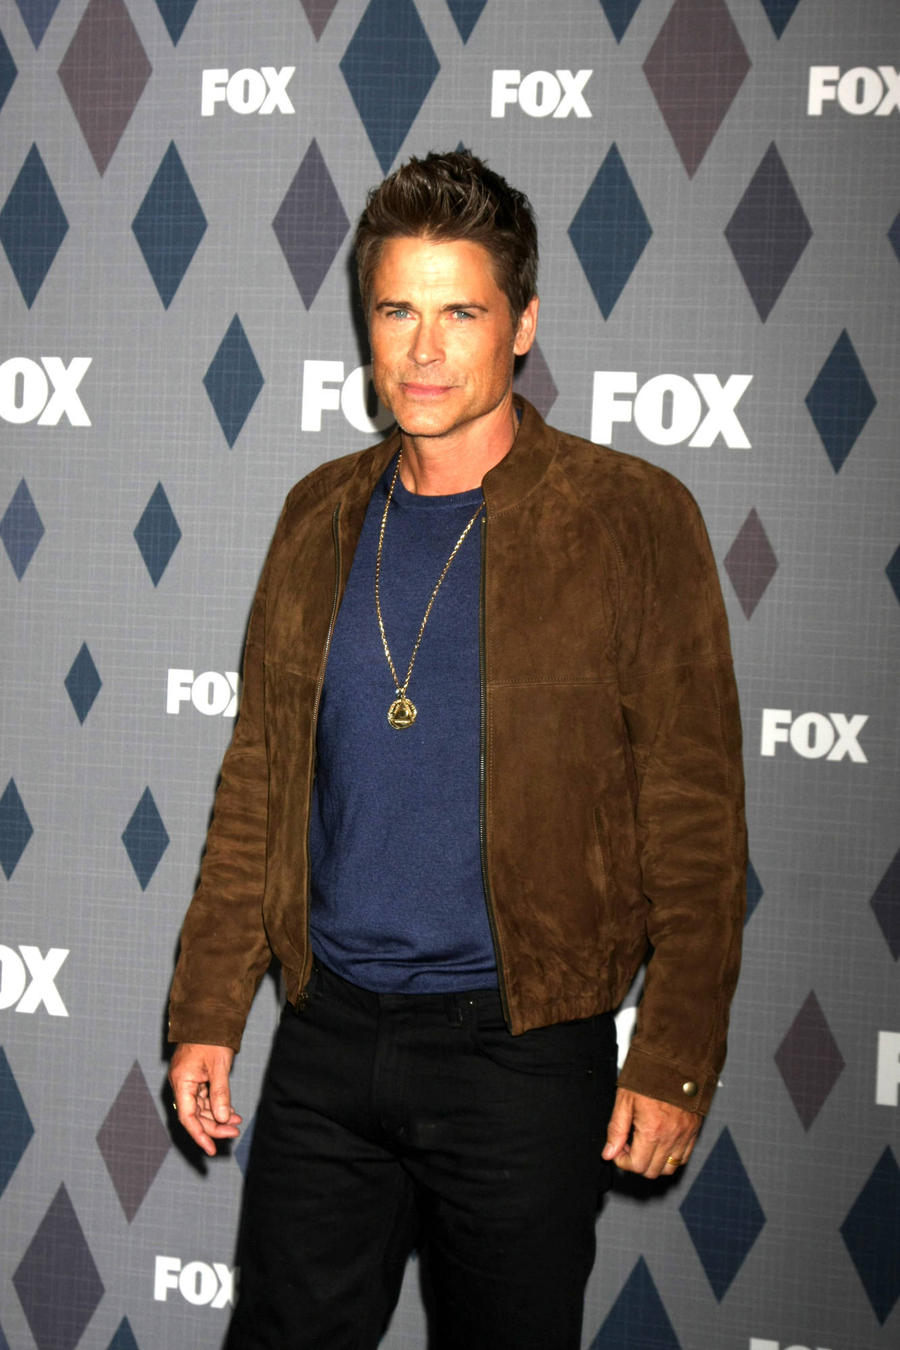 Rob Lowe To Be Roasted By America's Top Comedians